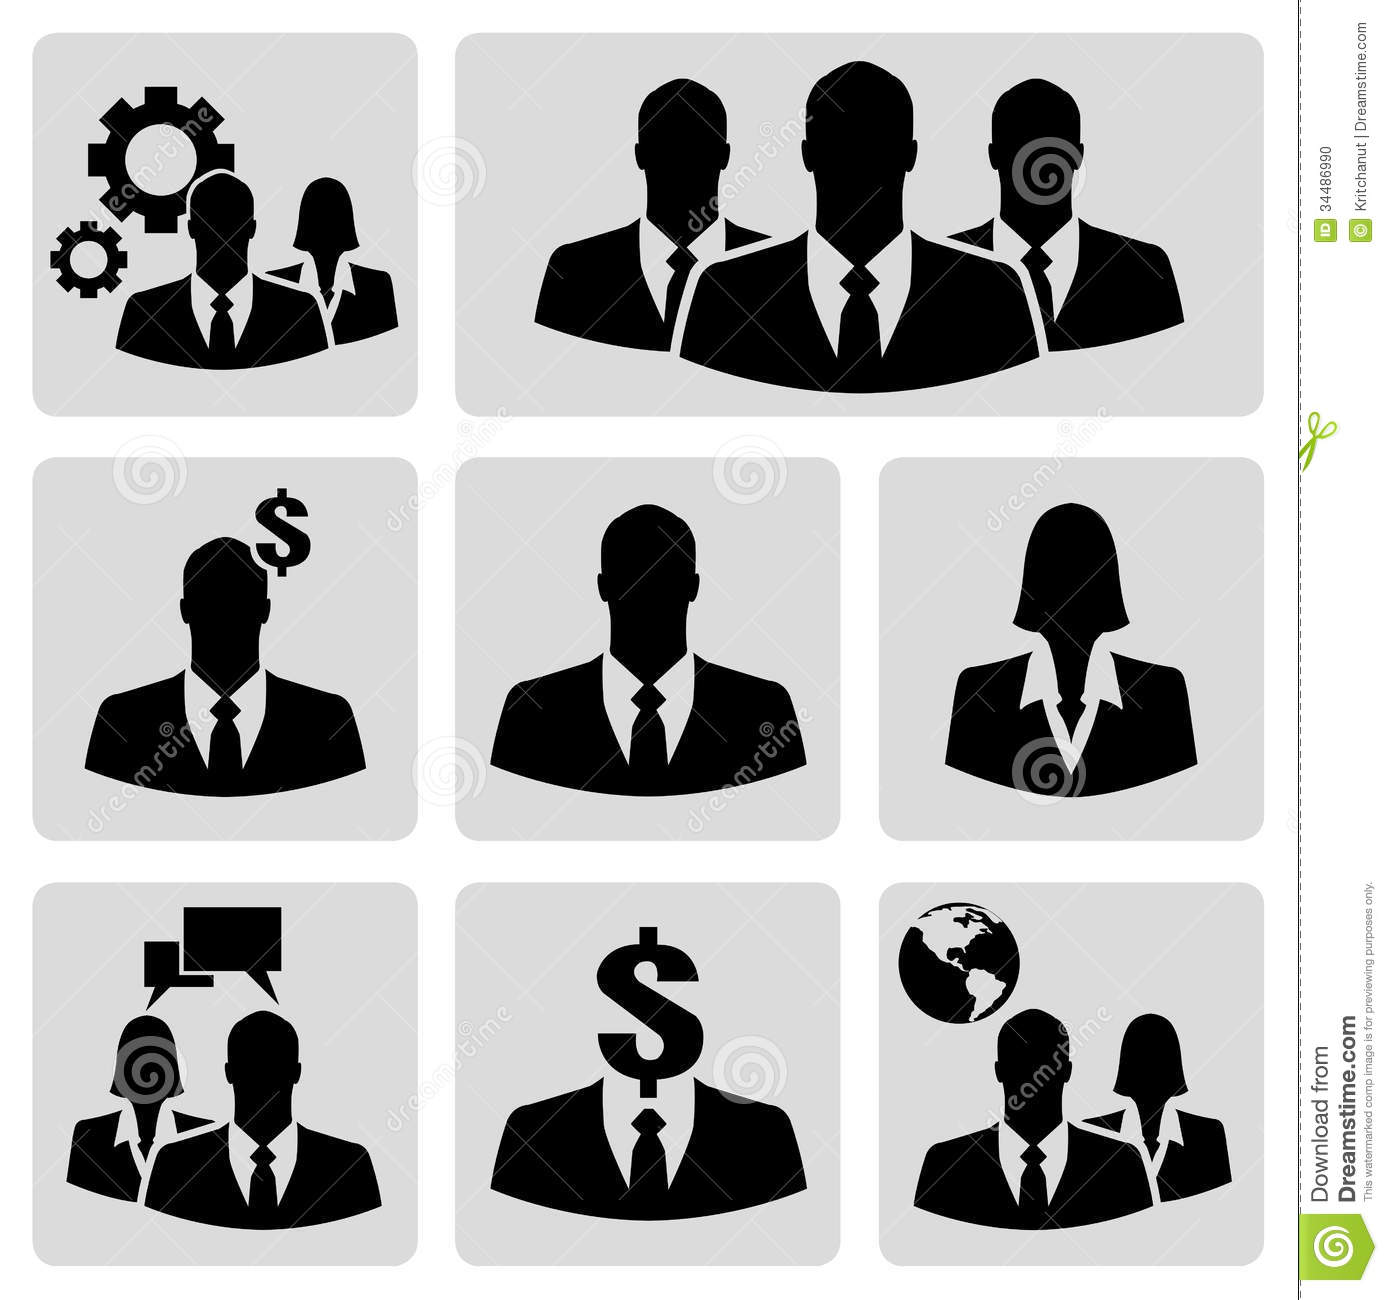 Businesspeople Icons Stock Photo Image 34486990